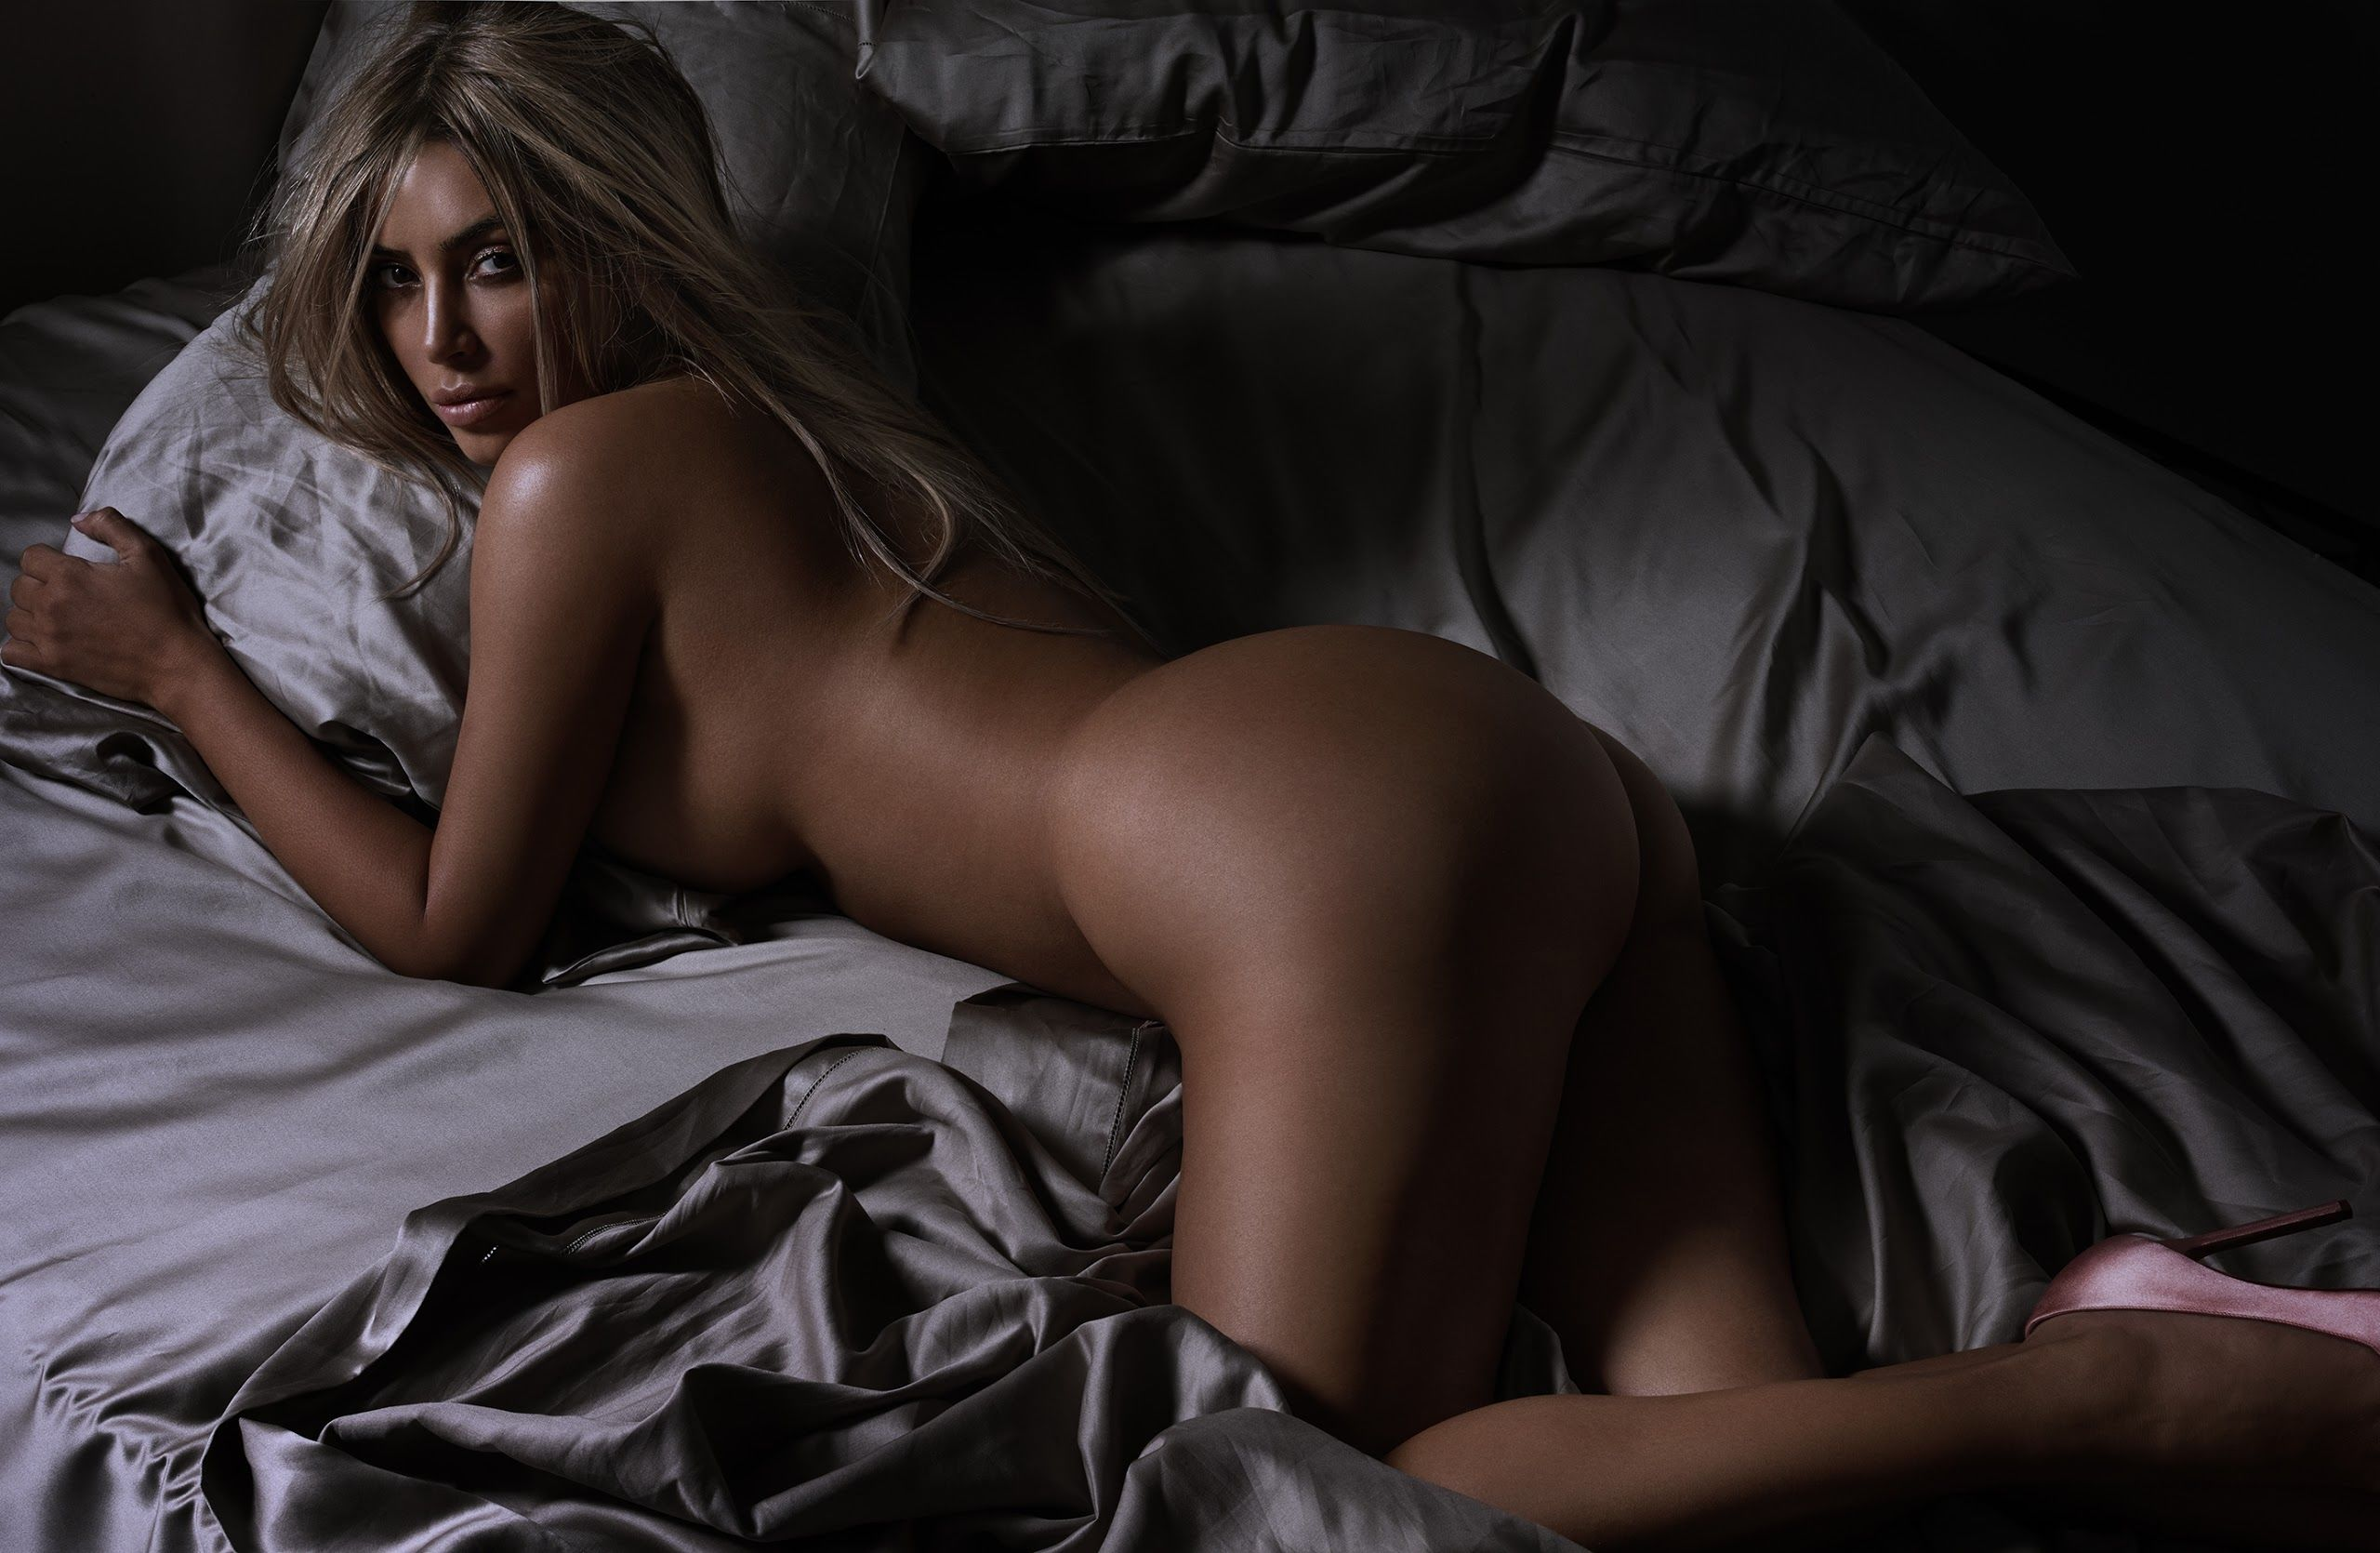 Celeb nudes hq pictures